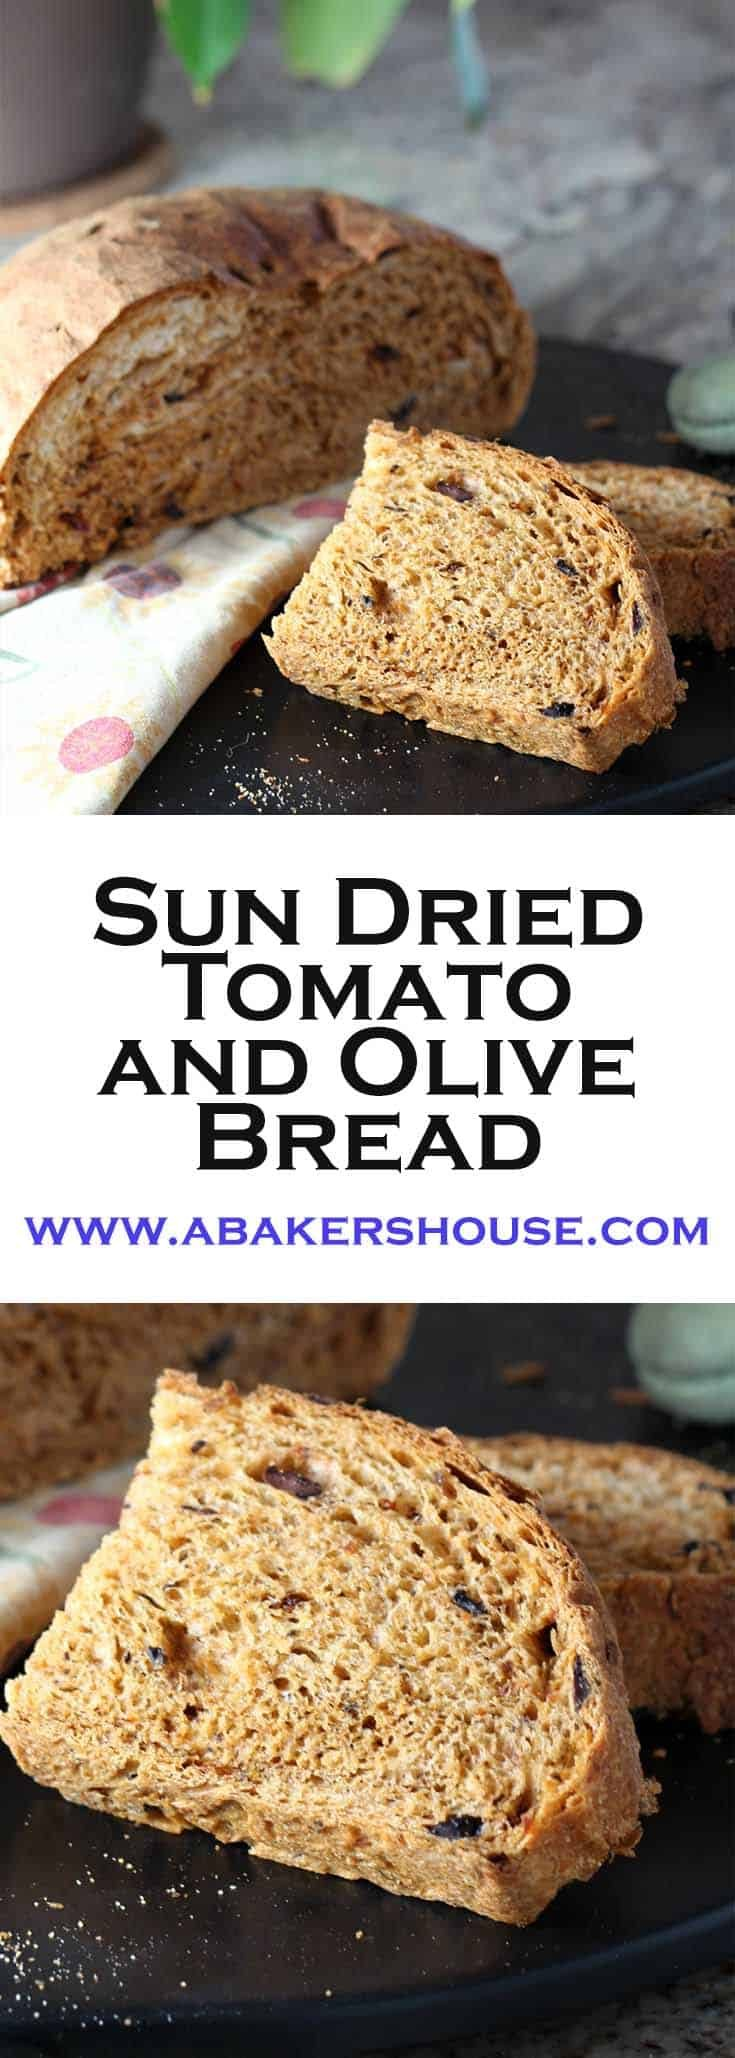 This recipe for sun dried tomato and olive bread uses equal amounts (in weight) of sun dried tomatoes and olives and the flavor is boosted by adding in a small bit of olive oil in which the sun dried tomatoes were jarred. #sundriedtomato #homemadebread #abakershouse